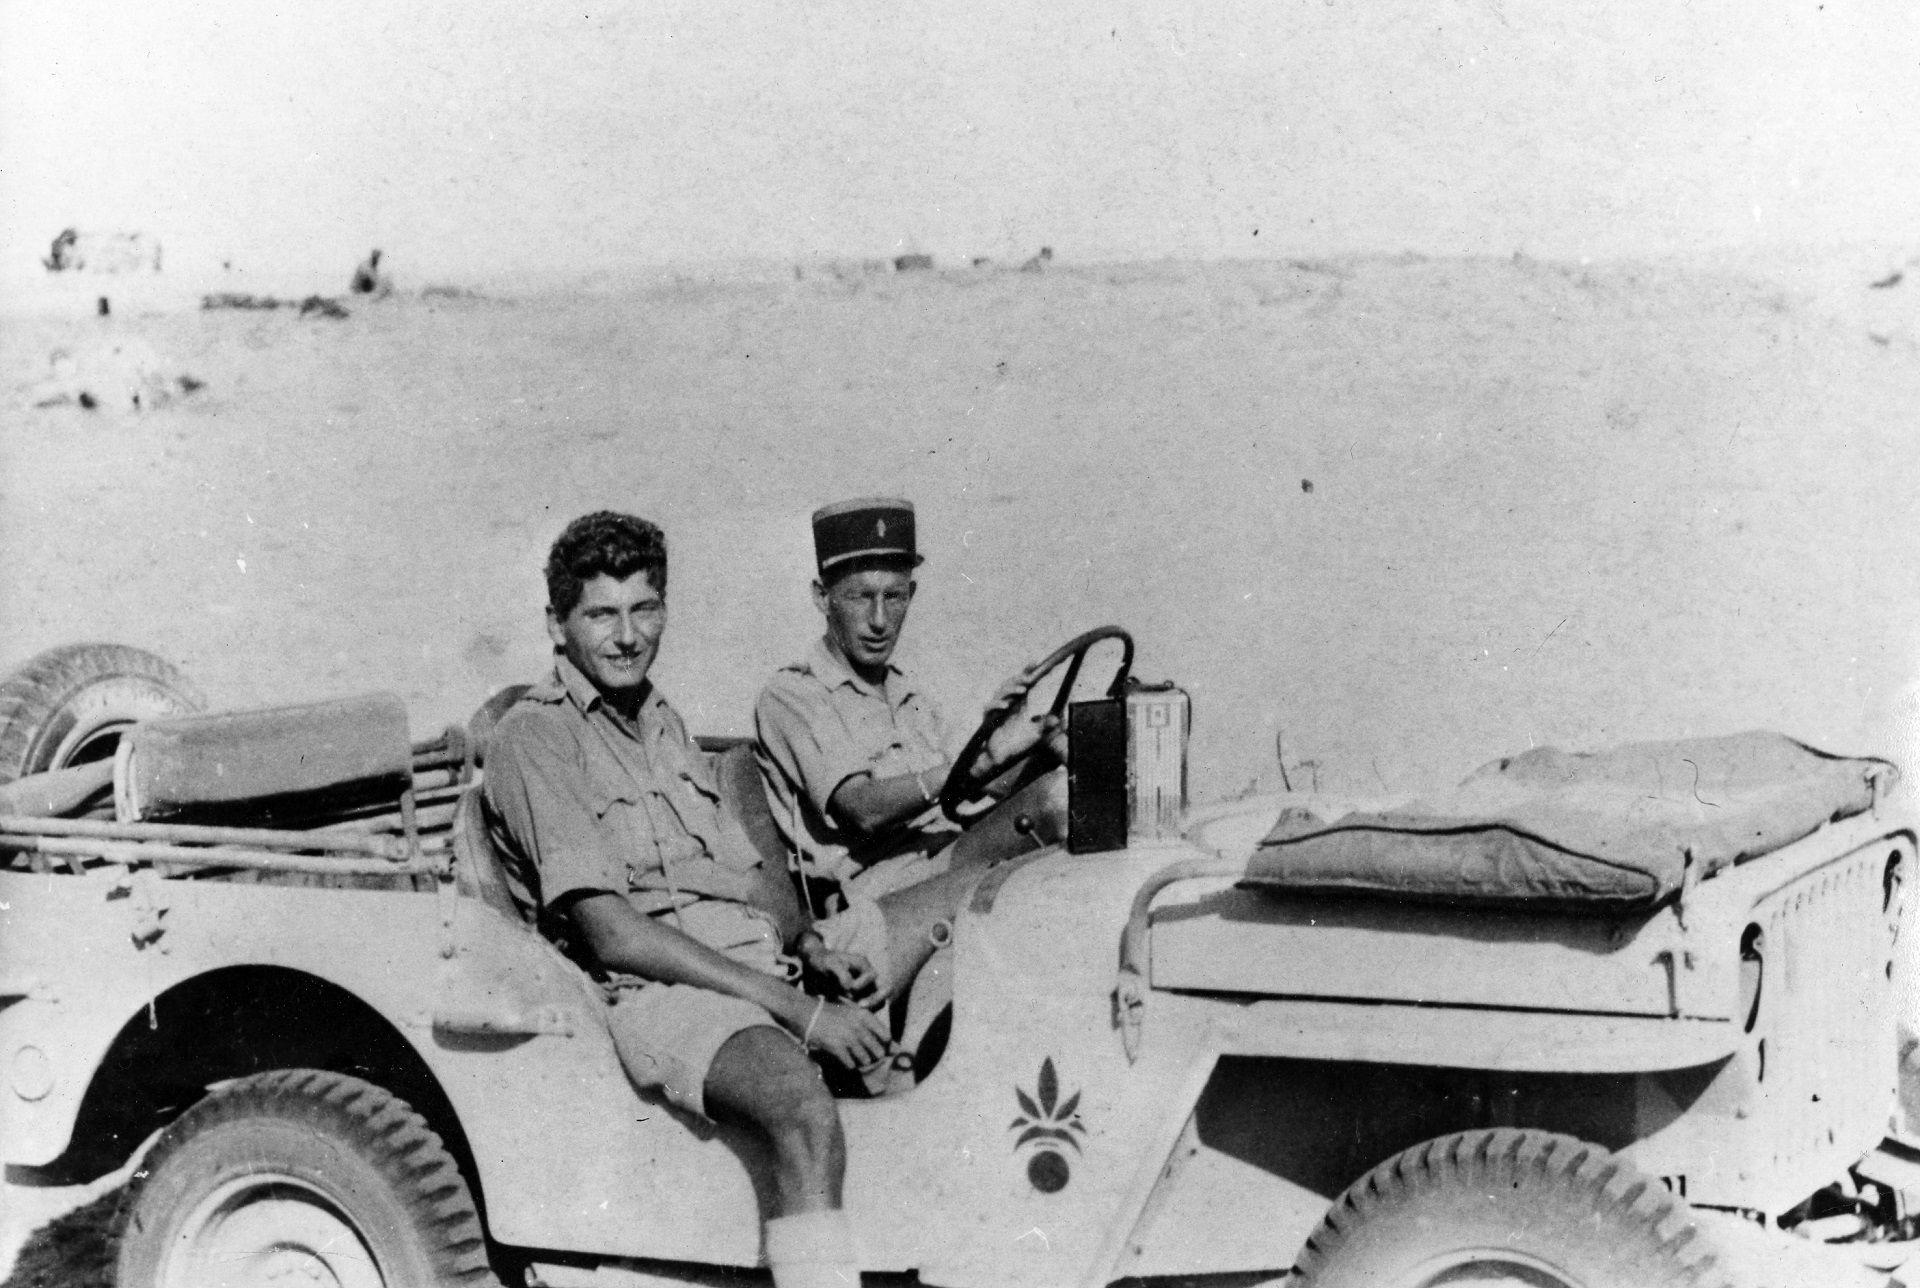 """(FILES) In this handout file picture released by the Musee de l'Ordre de la Liberation and  taken in 1942 in South El Alamein, at a place called """"Hell of the Stukas"""", shows French resistance member and Lieutenant Hubert Germain (L) and Captain Paul Arnault, both Companion of the Liberation. - Hubert Germain, who was the last surviving Liberation companion, died at the age of 101, French Defense Minister announced on October 12, 2021. (Photo by - / Mus�e de l�Ordre de la Lib�ration / AFP) / RESTRICTED TO EDITORIAL USE - MANDATORY CREDIT """"AFP PHOTO/ MUSEE DE L'ORDRE DE LA LIBERATION"""" - NO MARKETING - NO ADVERTISING CAMPAIGNS - DISTRIBUTED AS A SERVICE TO CLIENTS"""